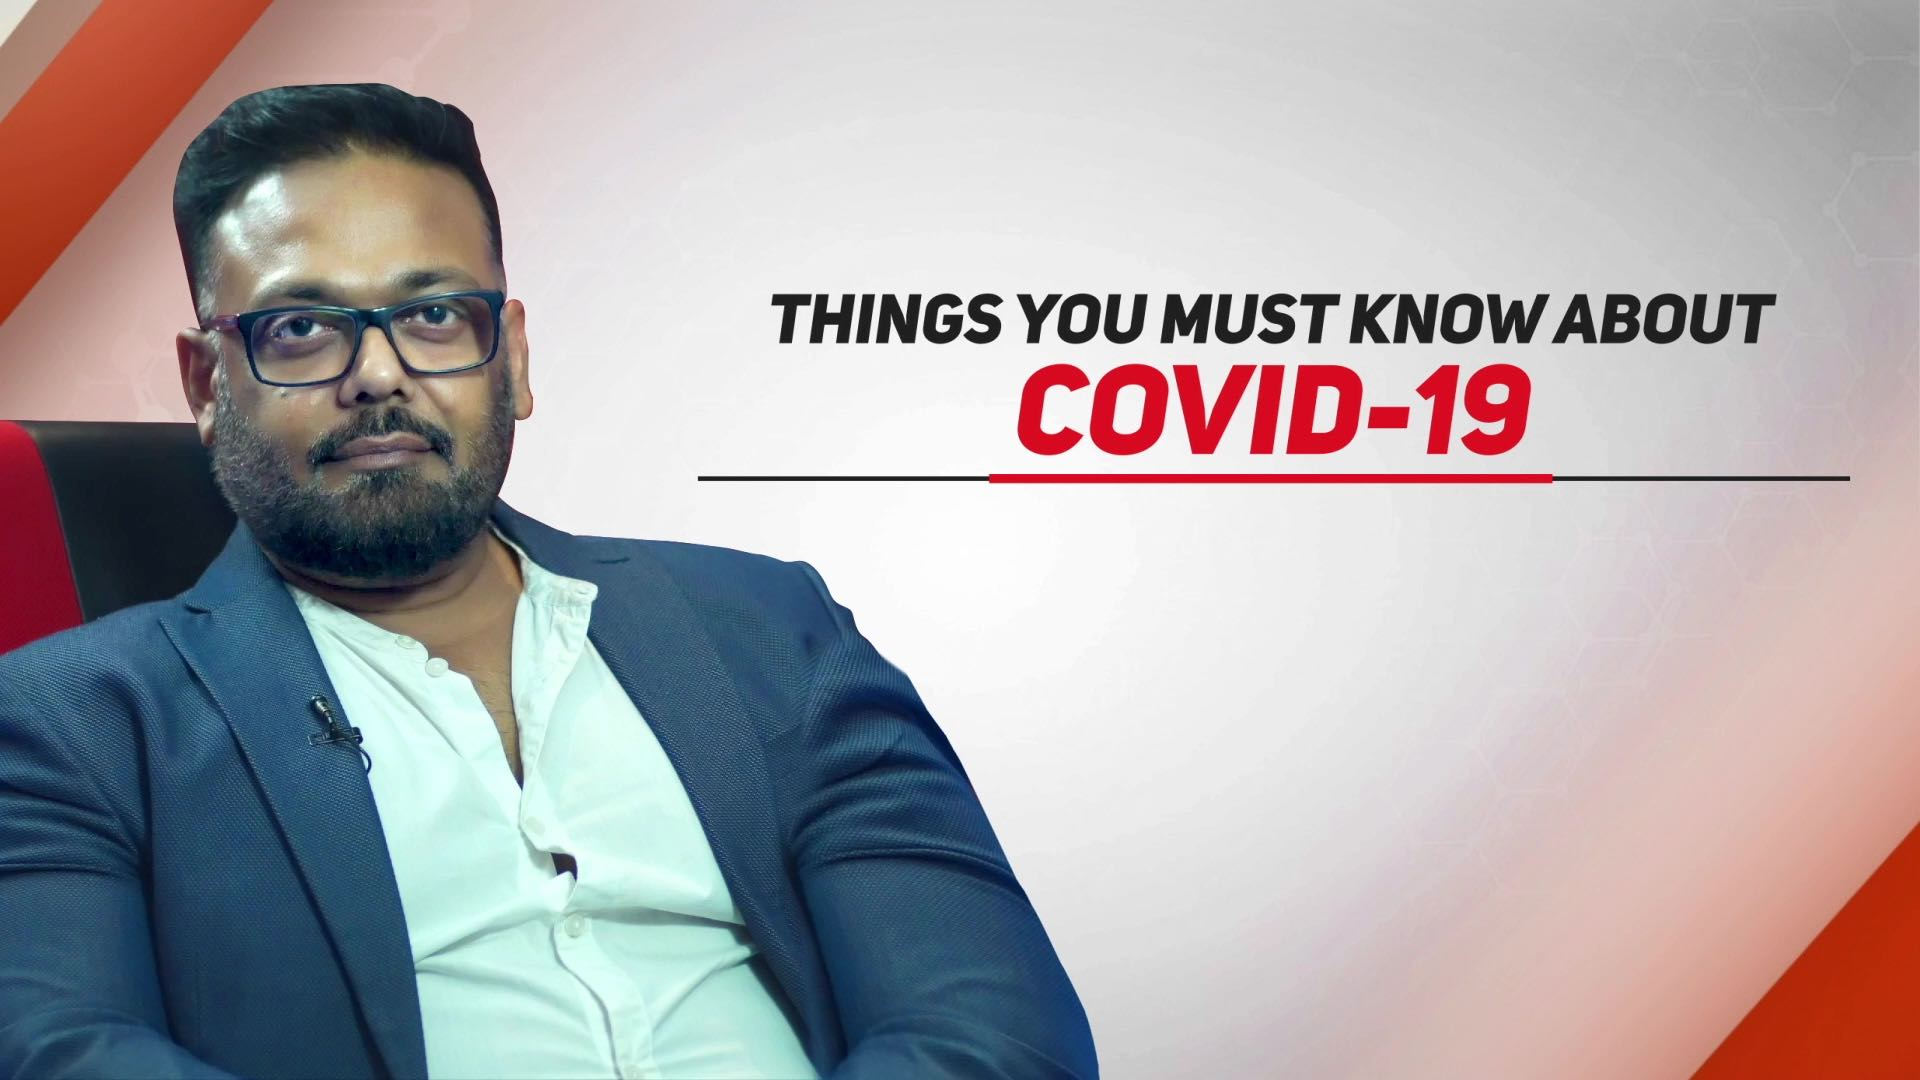 Things You Must Know About COVID-19